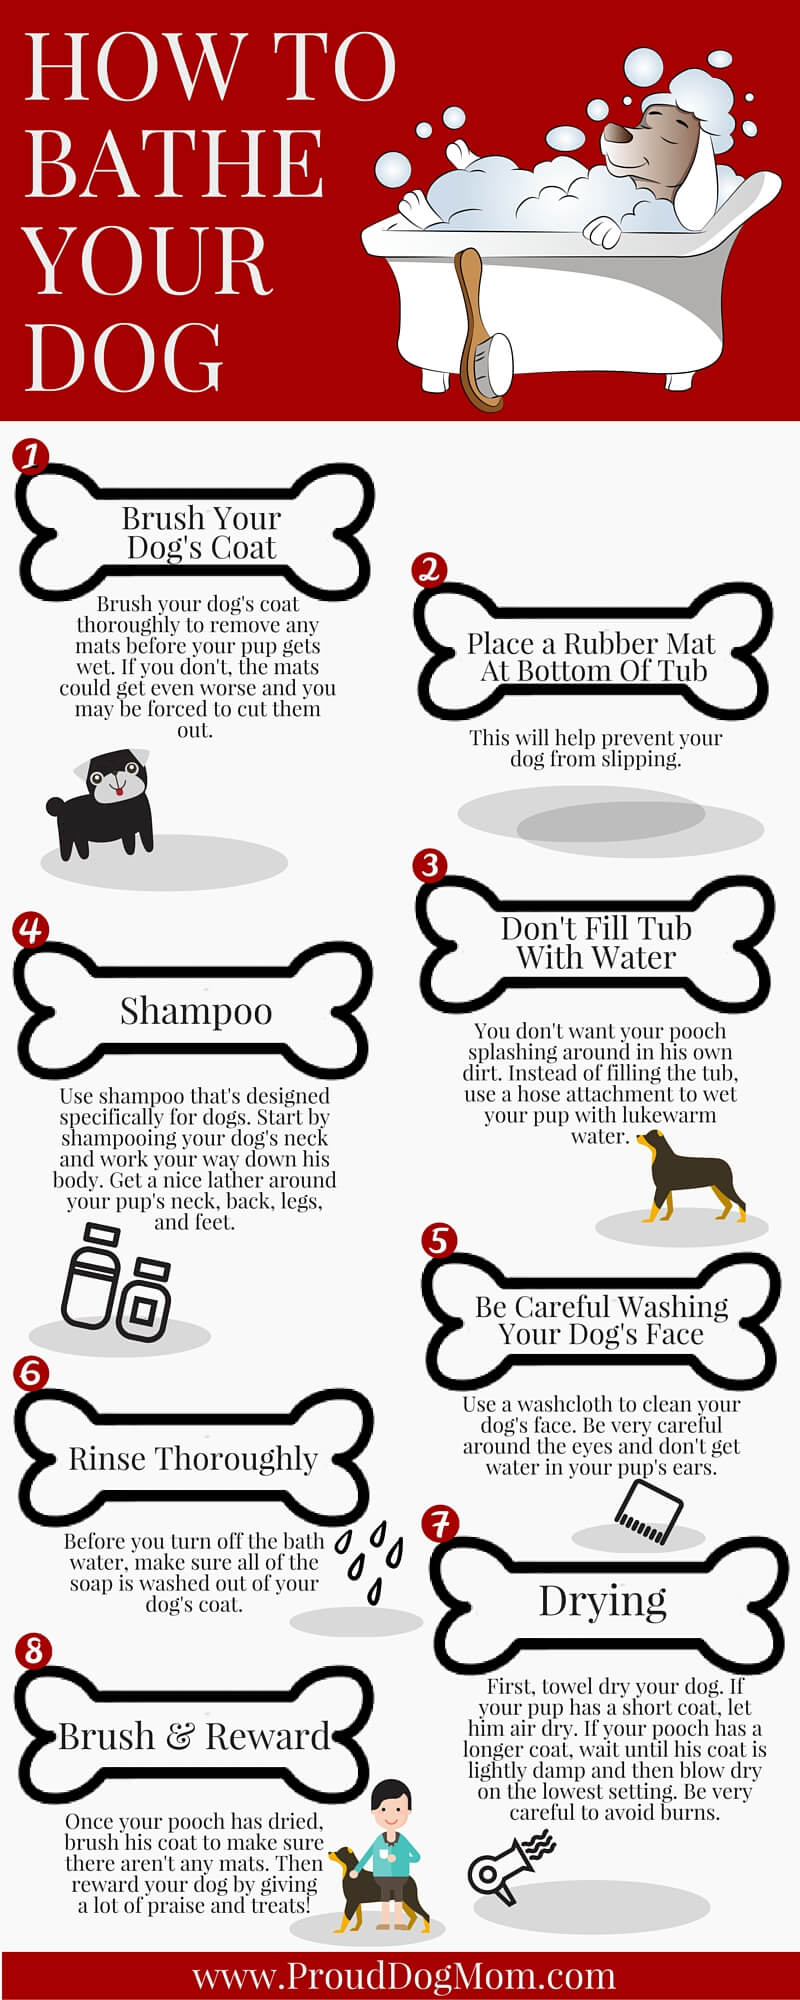 how to bathe your dog infographic 1